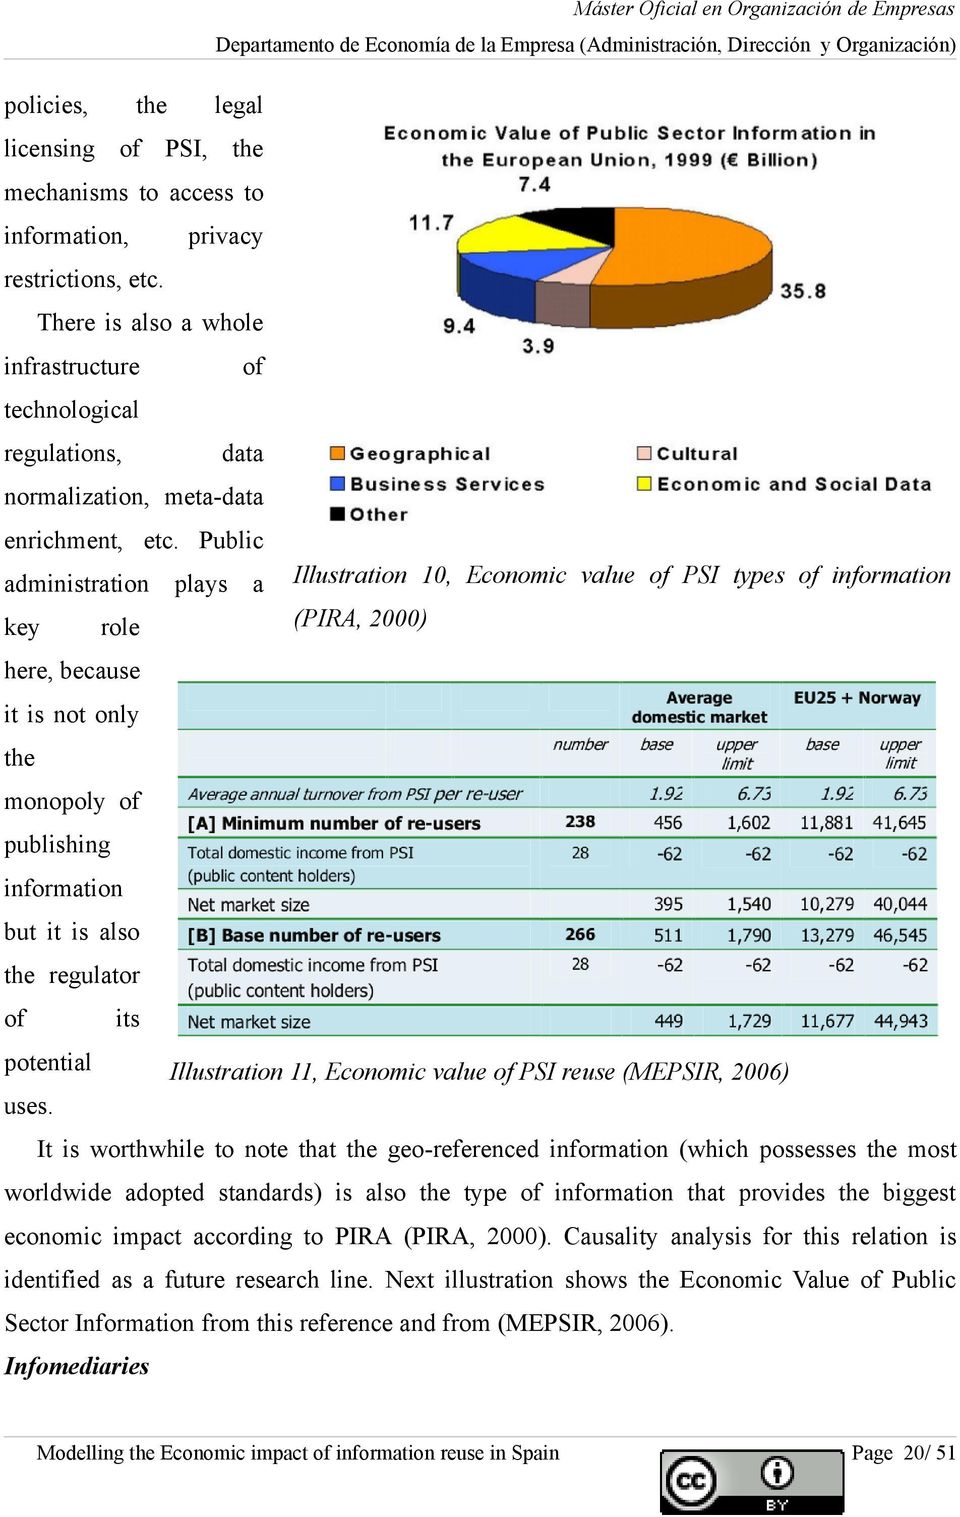 Public administration plays a Illustration 10, Economic value of PSI types of information key role (PIRA, 2000) here, because it is not only the monopoly of publishing information but it is also the